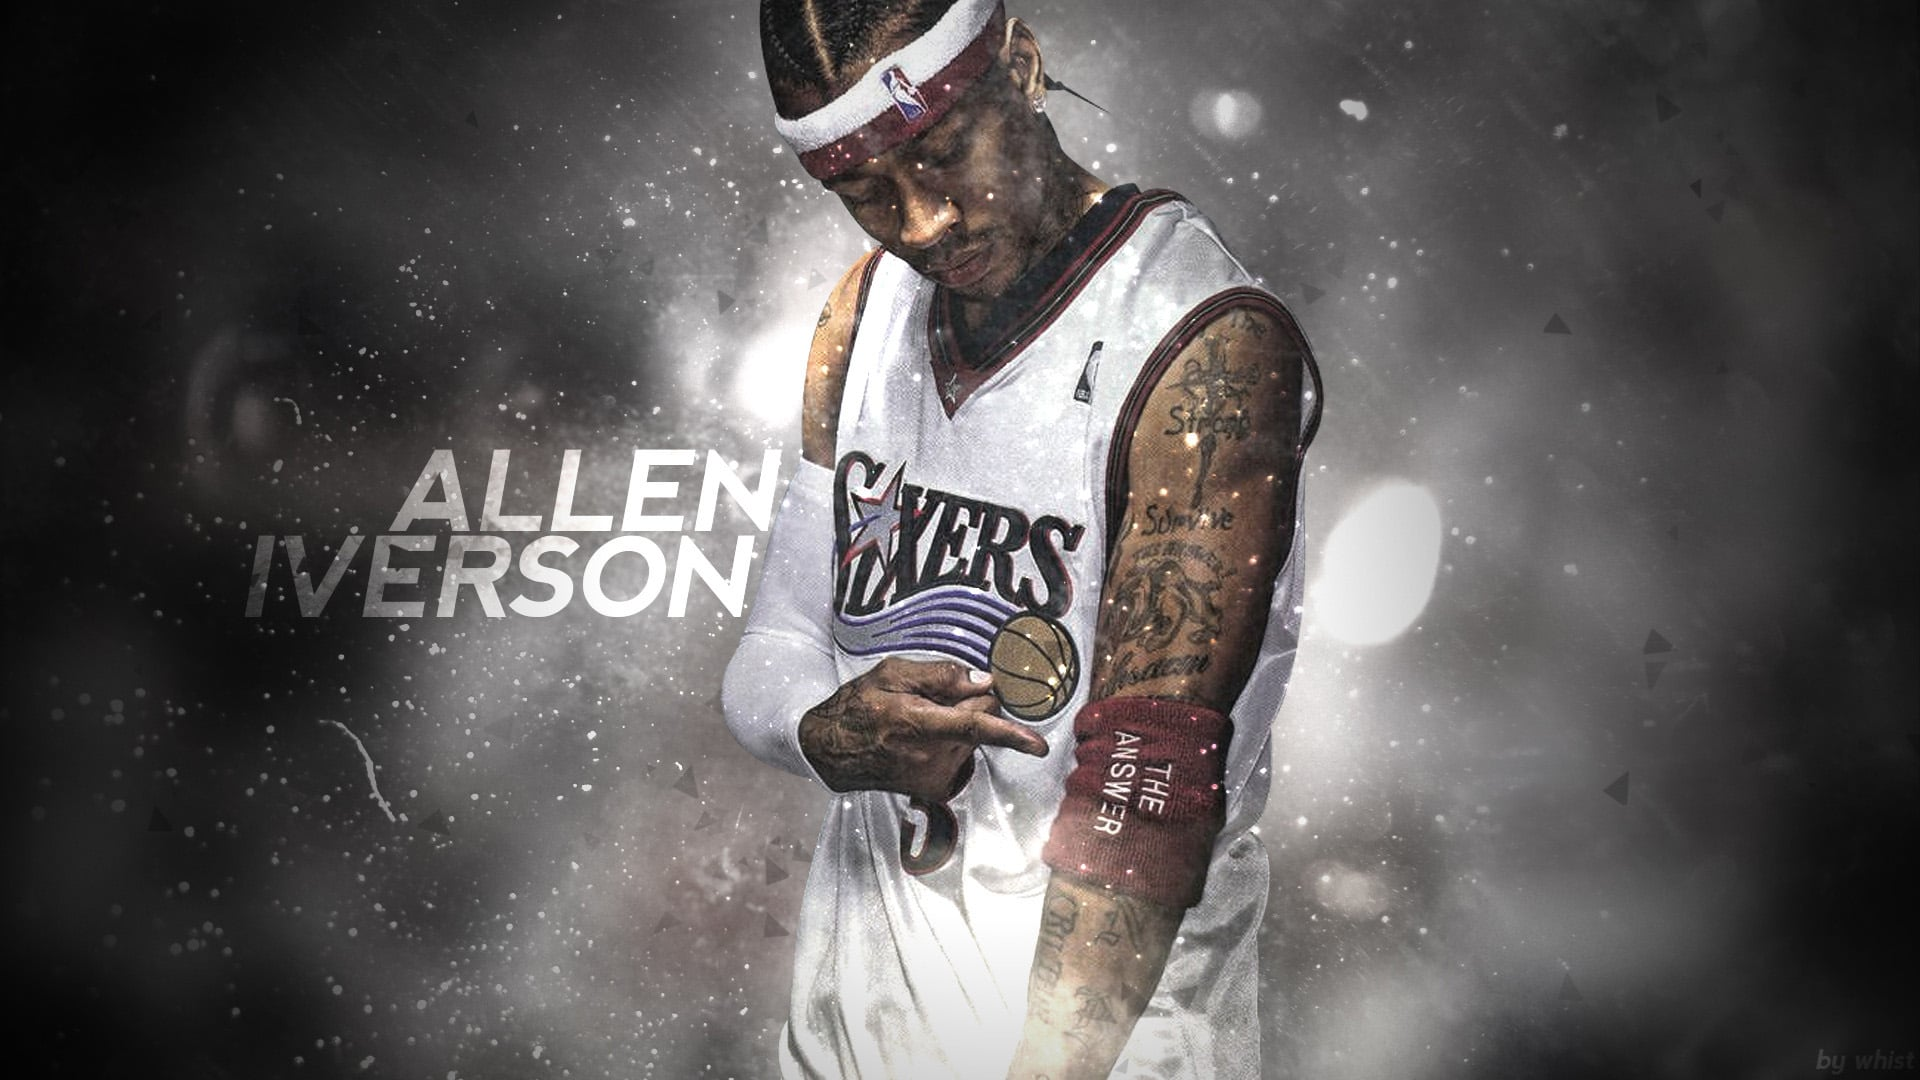 essay on allen iverson Allen iverson is a role model posted on october 31, 2016 by 21jerryc allen iverson is somebody who you can learn from because of where he grew up what, his emotions are, his experiences and how he persevered through them.